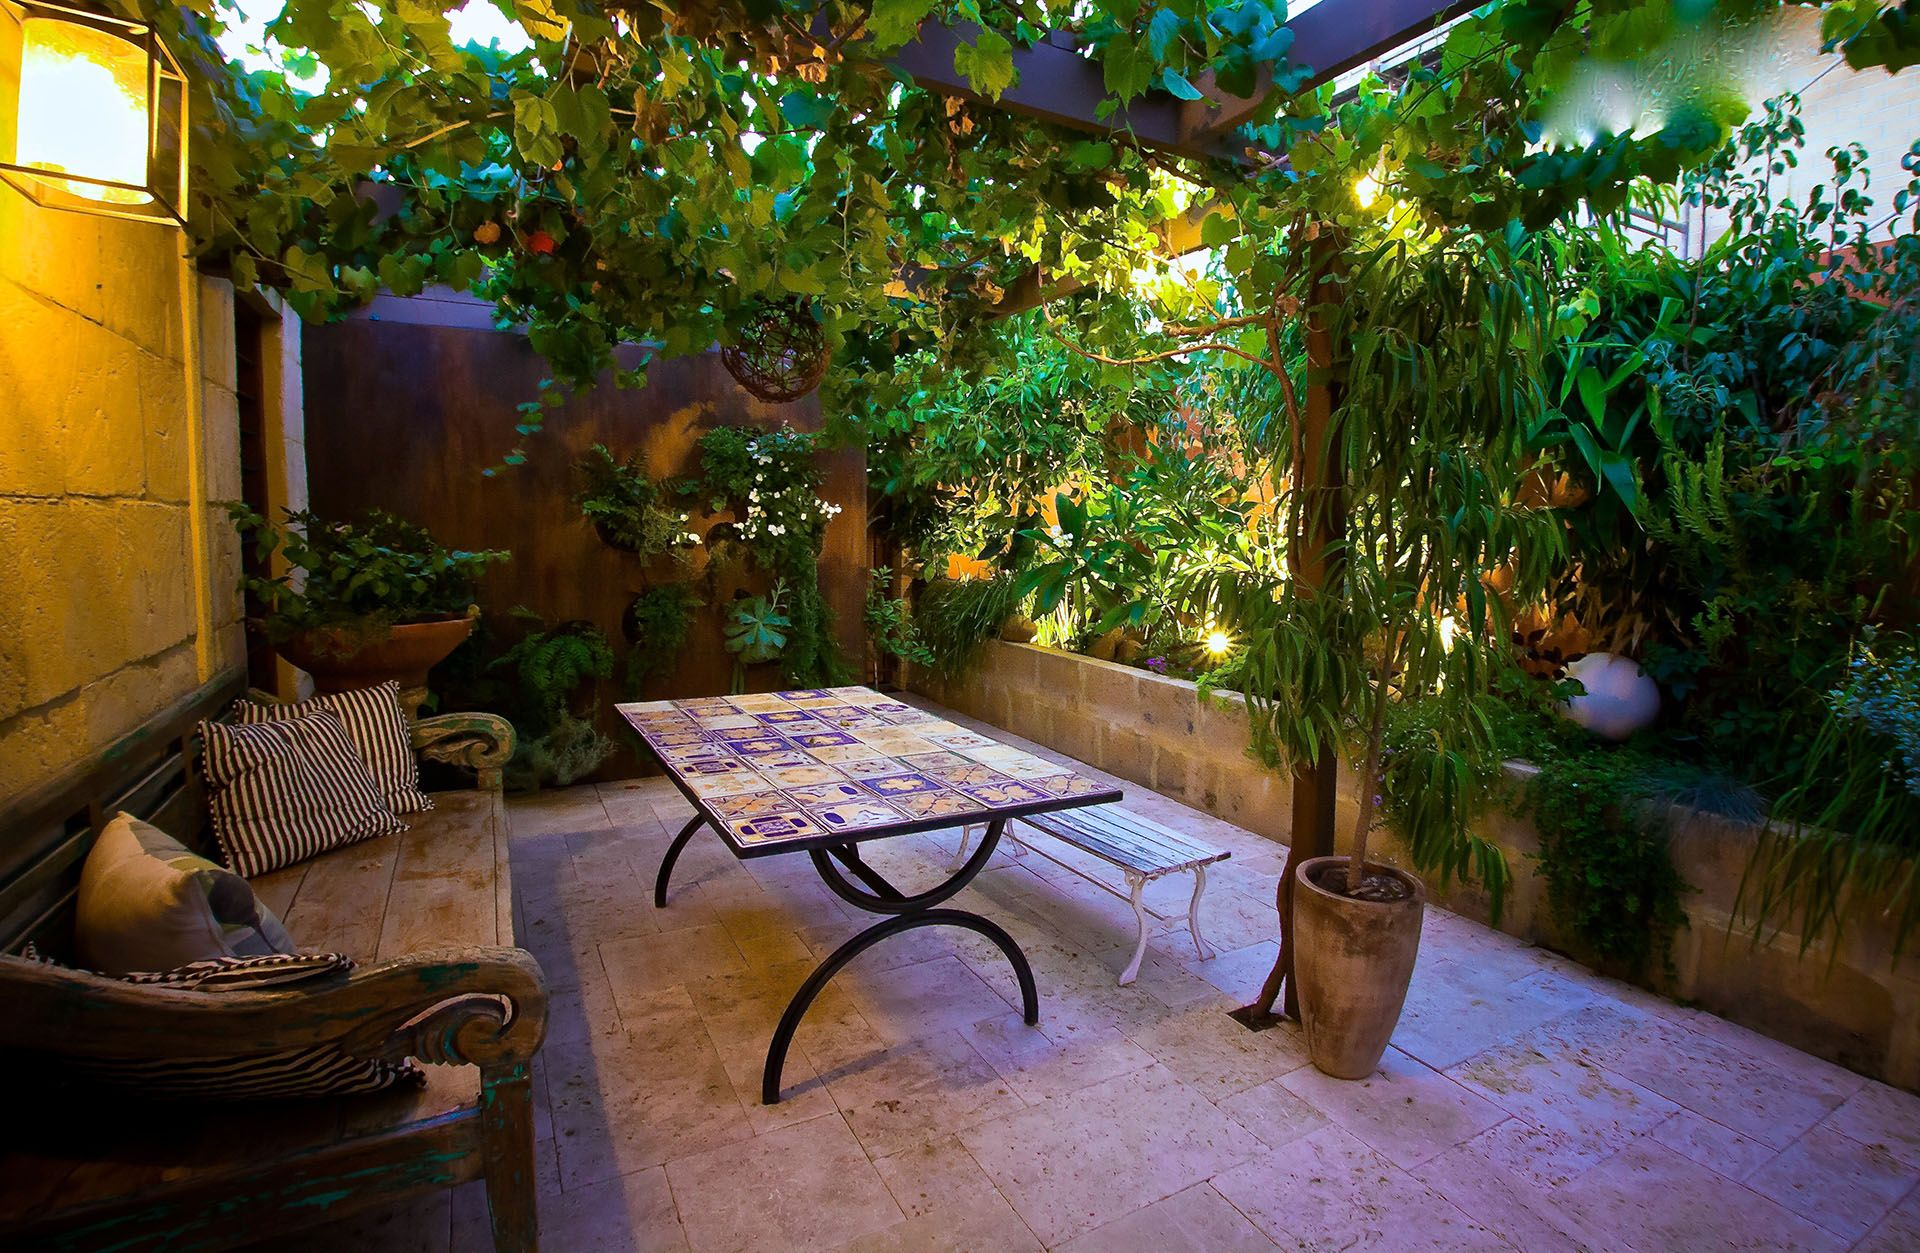 Exterior courtyard renovation mediterranean garden design for Small shady courtyard ideas